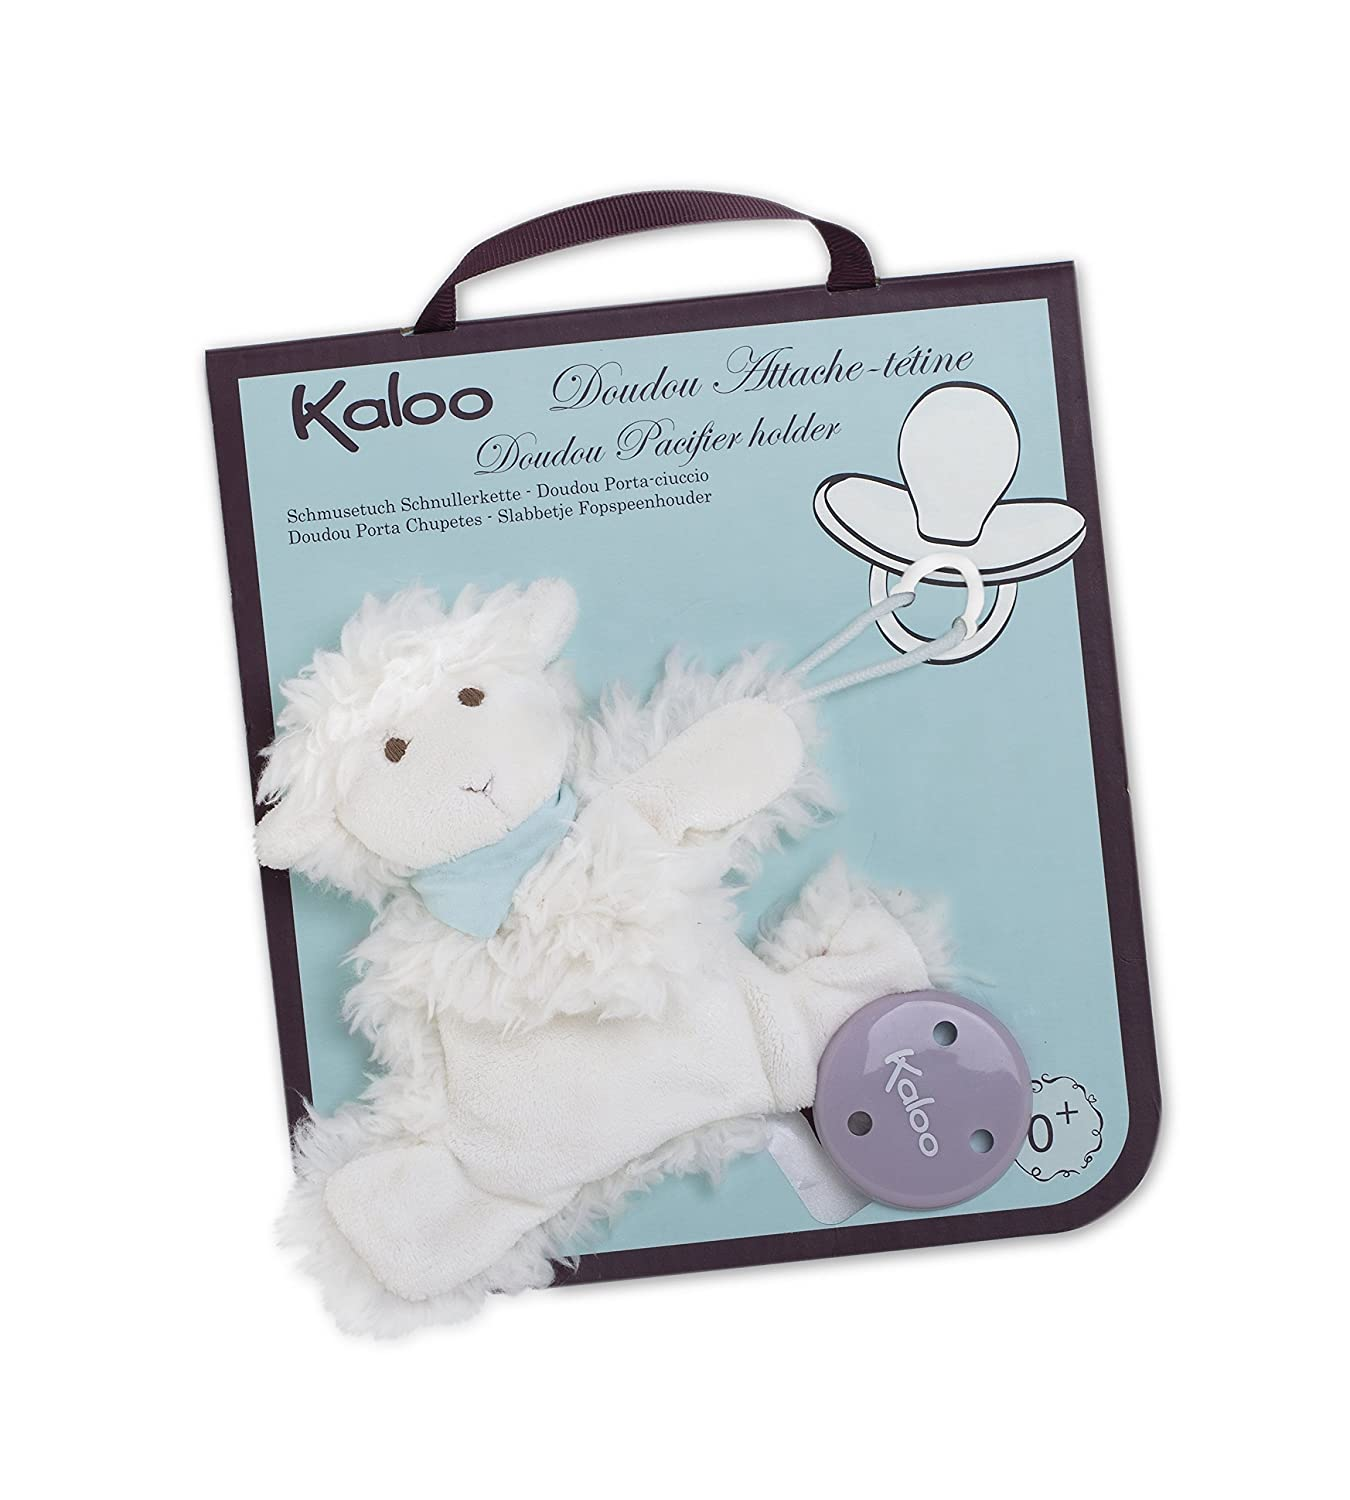 Kaloo Les Amis Doudou Pacifier Holder Lamb Plush, Vanilla